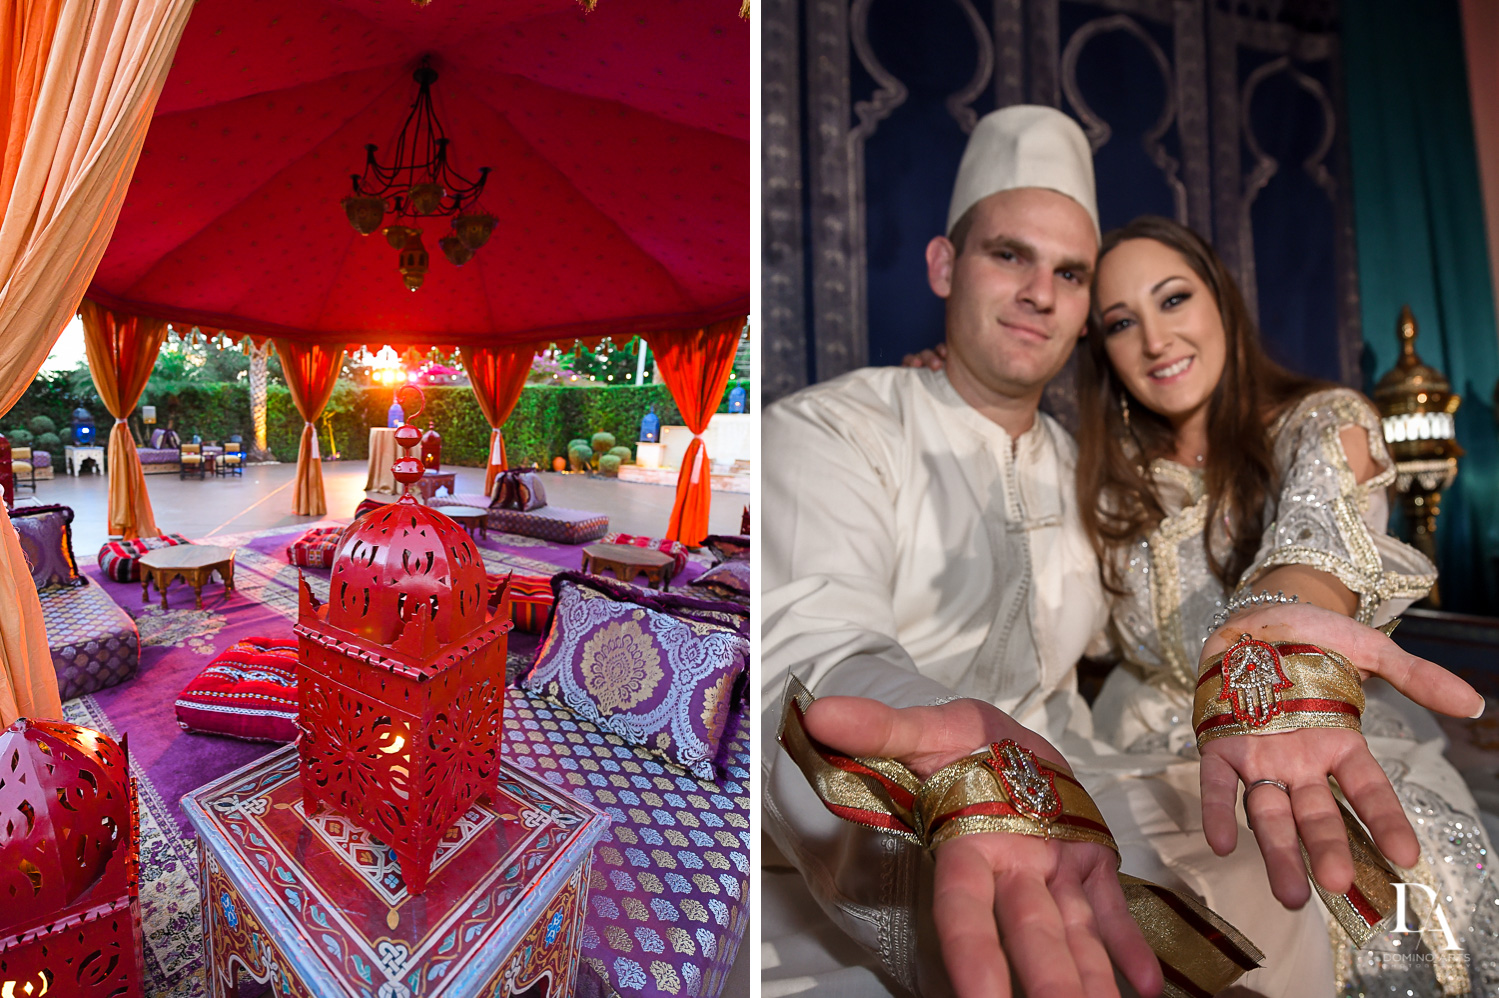 decor and bride and groom at Traditional Henna Party Photography at Lavan South Florida by Domino Arts